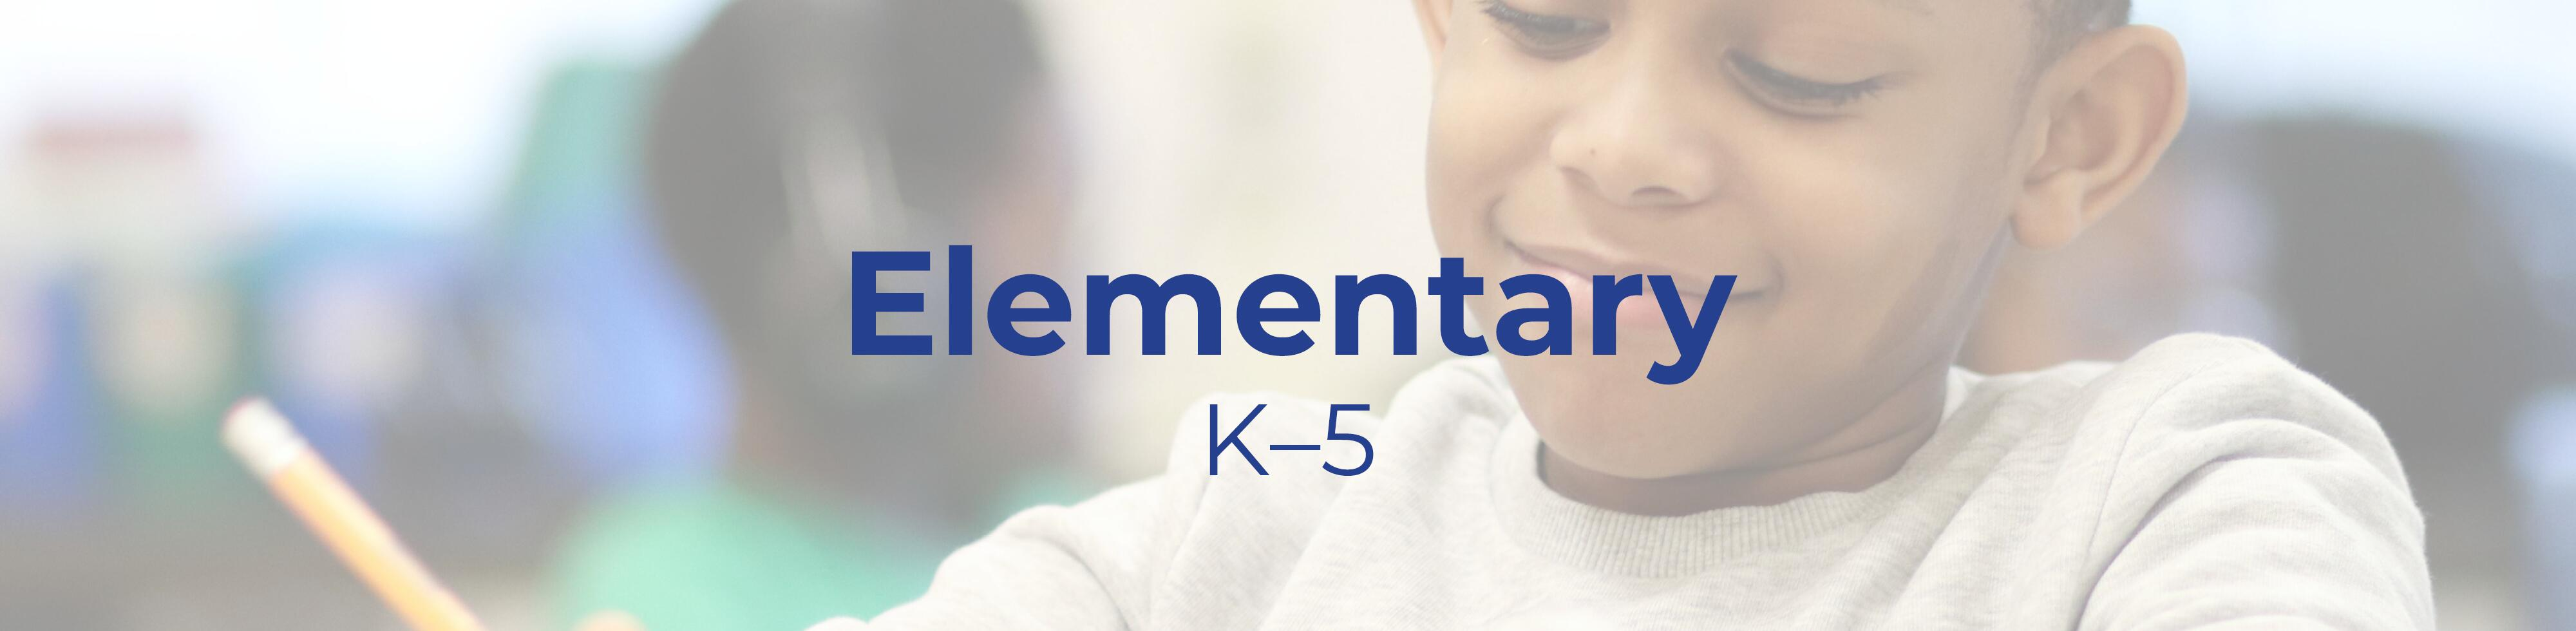 "Text that reads ""Elementary K-5"" overlaid on a picture of a student working"